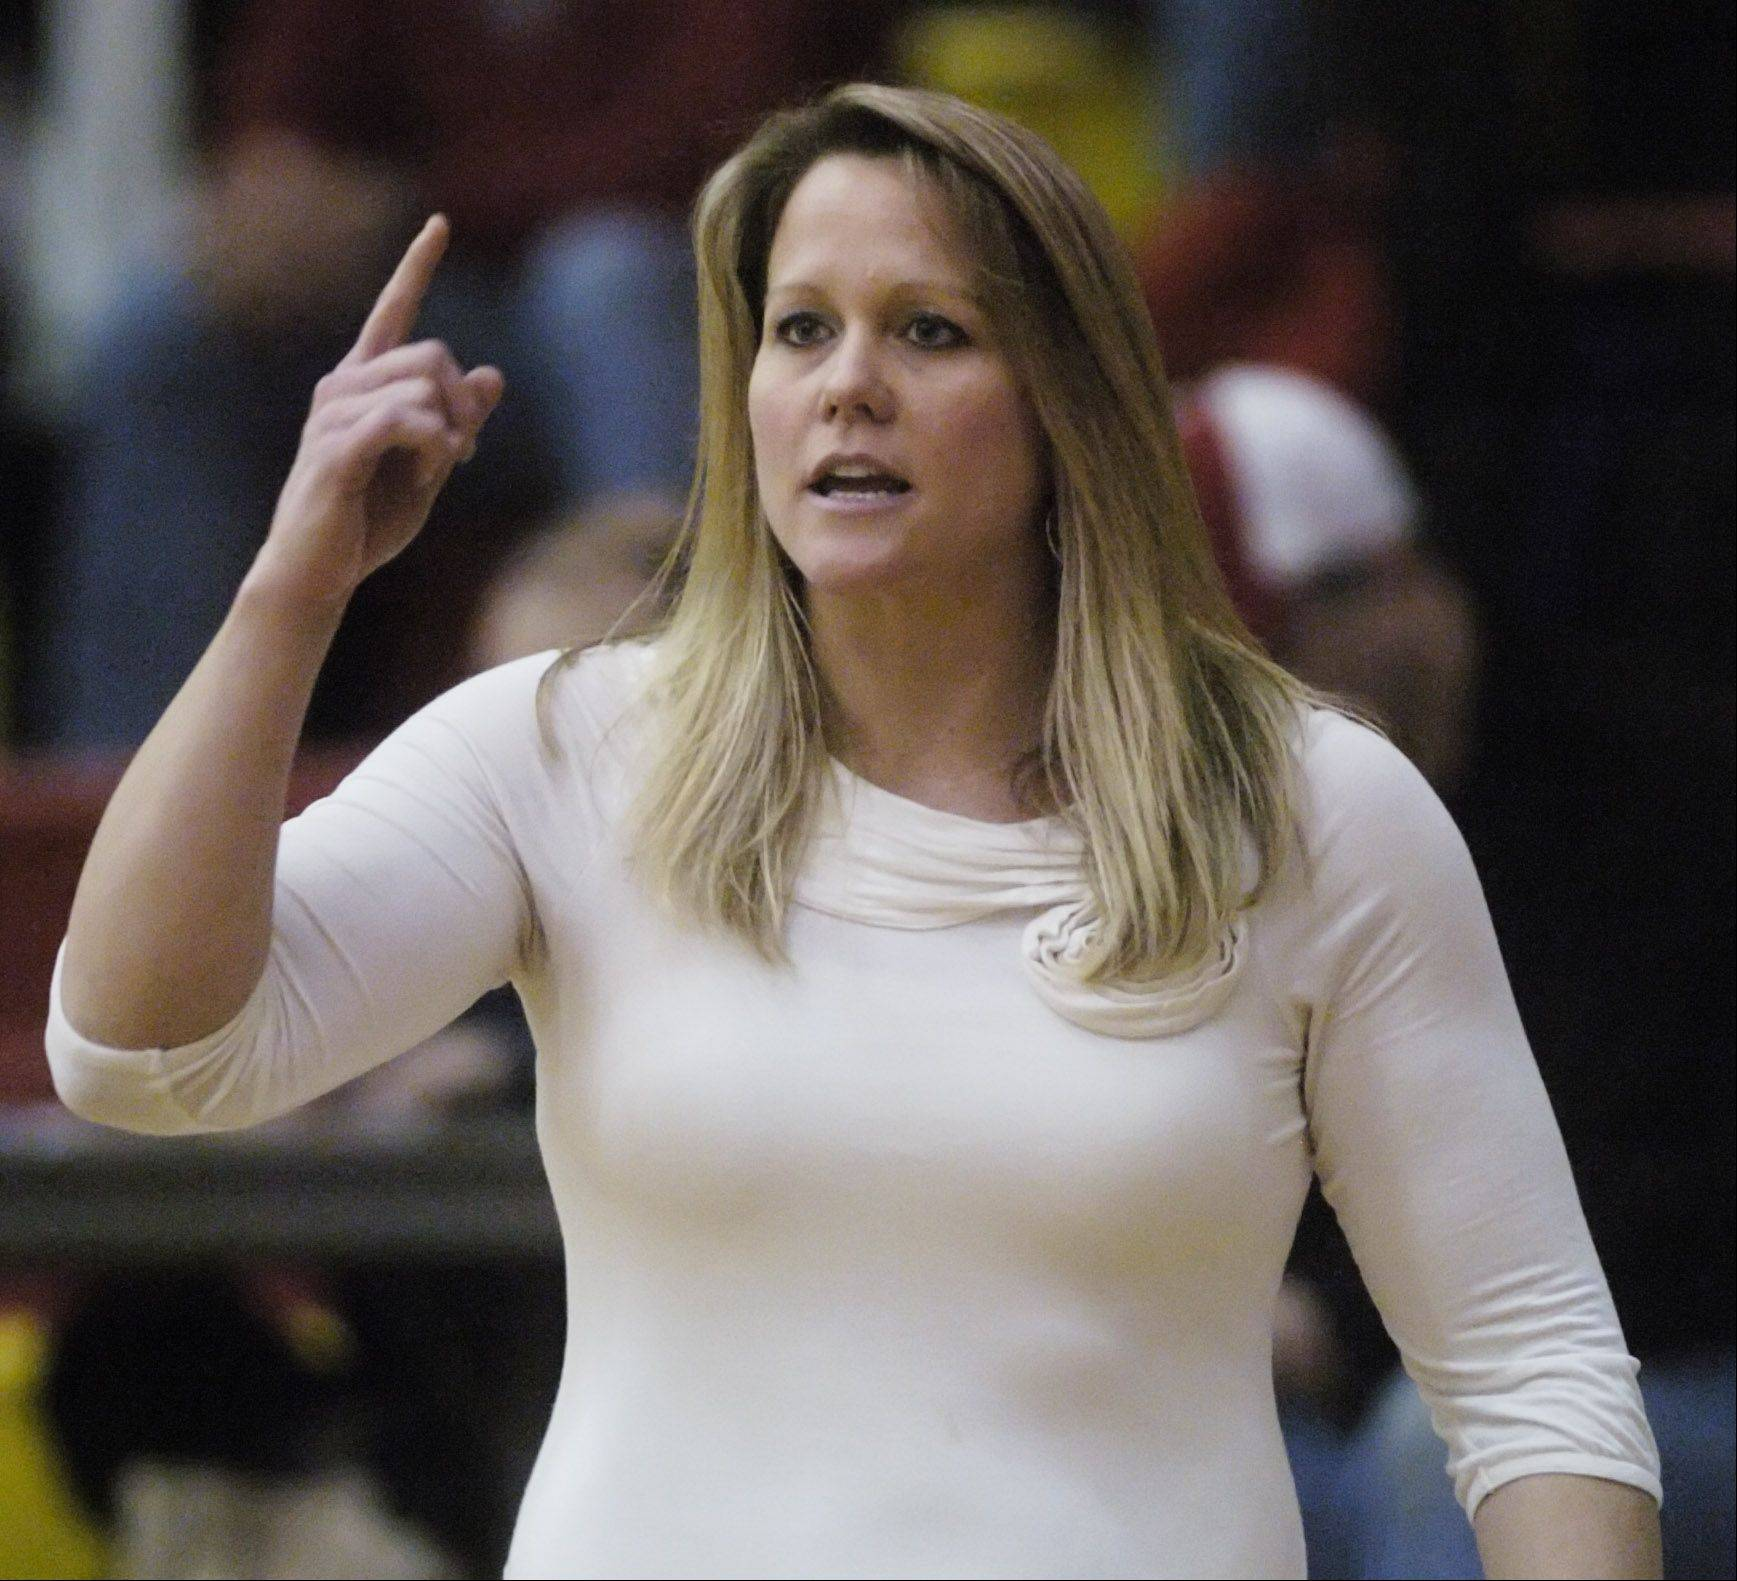 Ashley Berggren�s run as Schaumburg girls basketball coach is over, but she�s looking forward to developing other professional and personal opportunities.